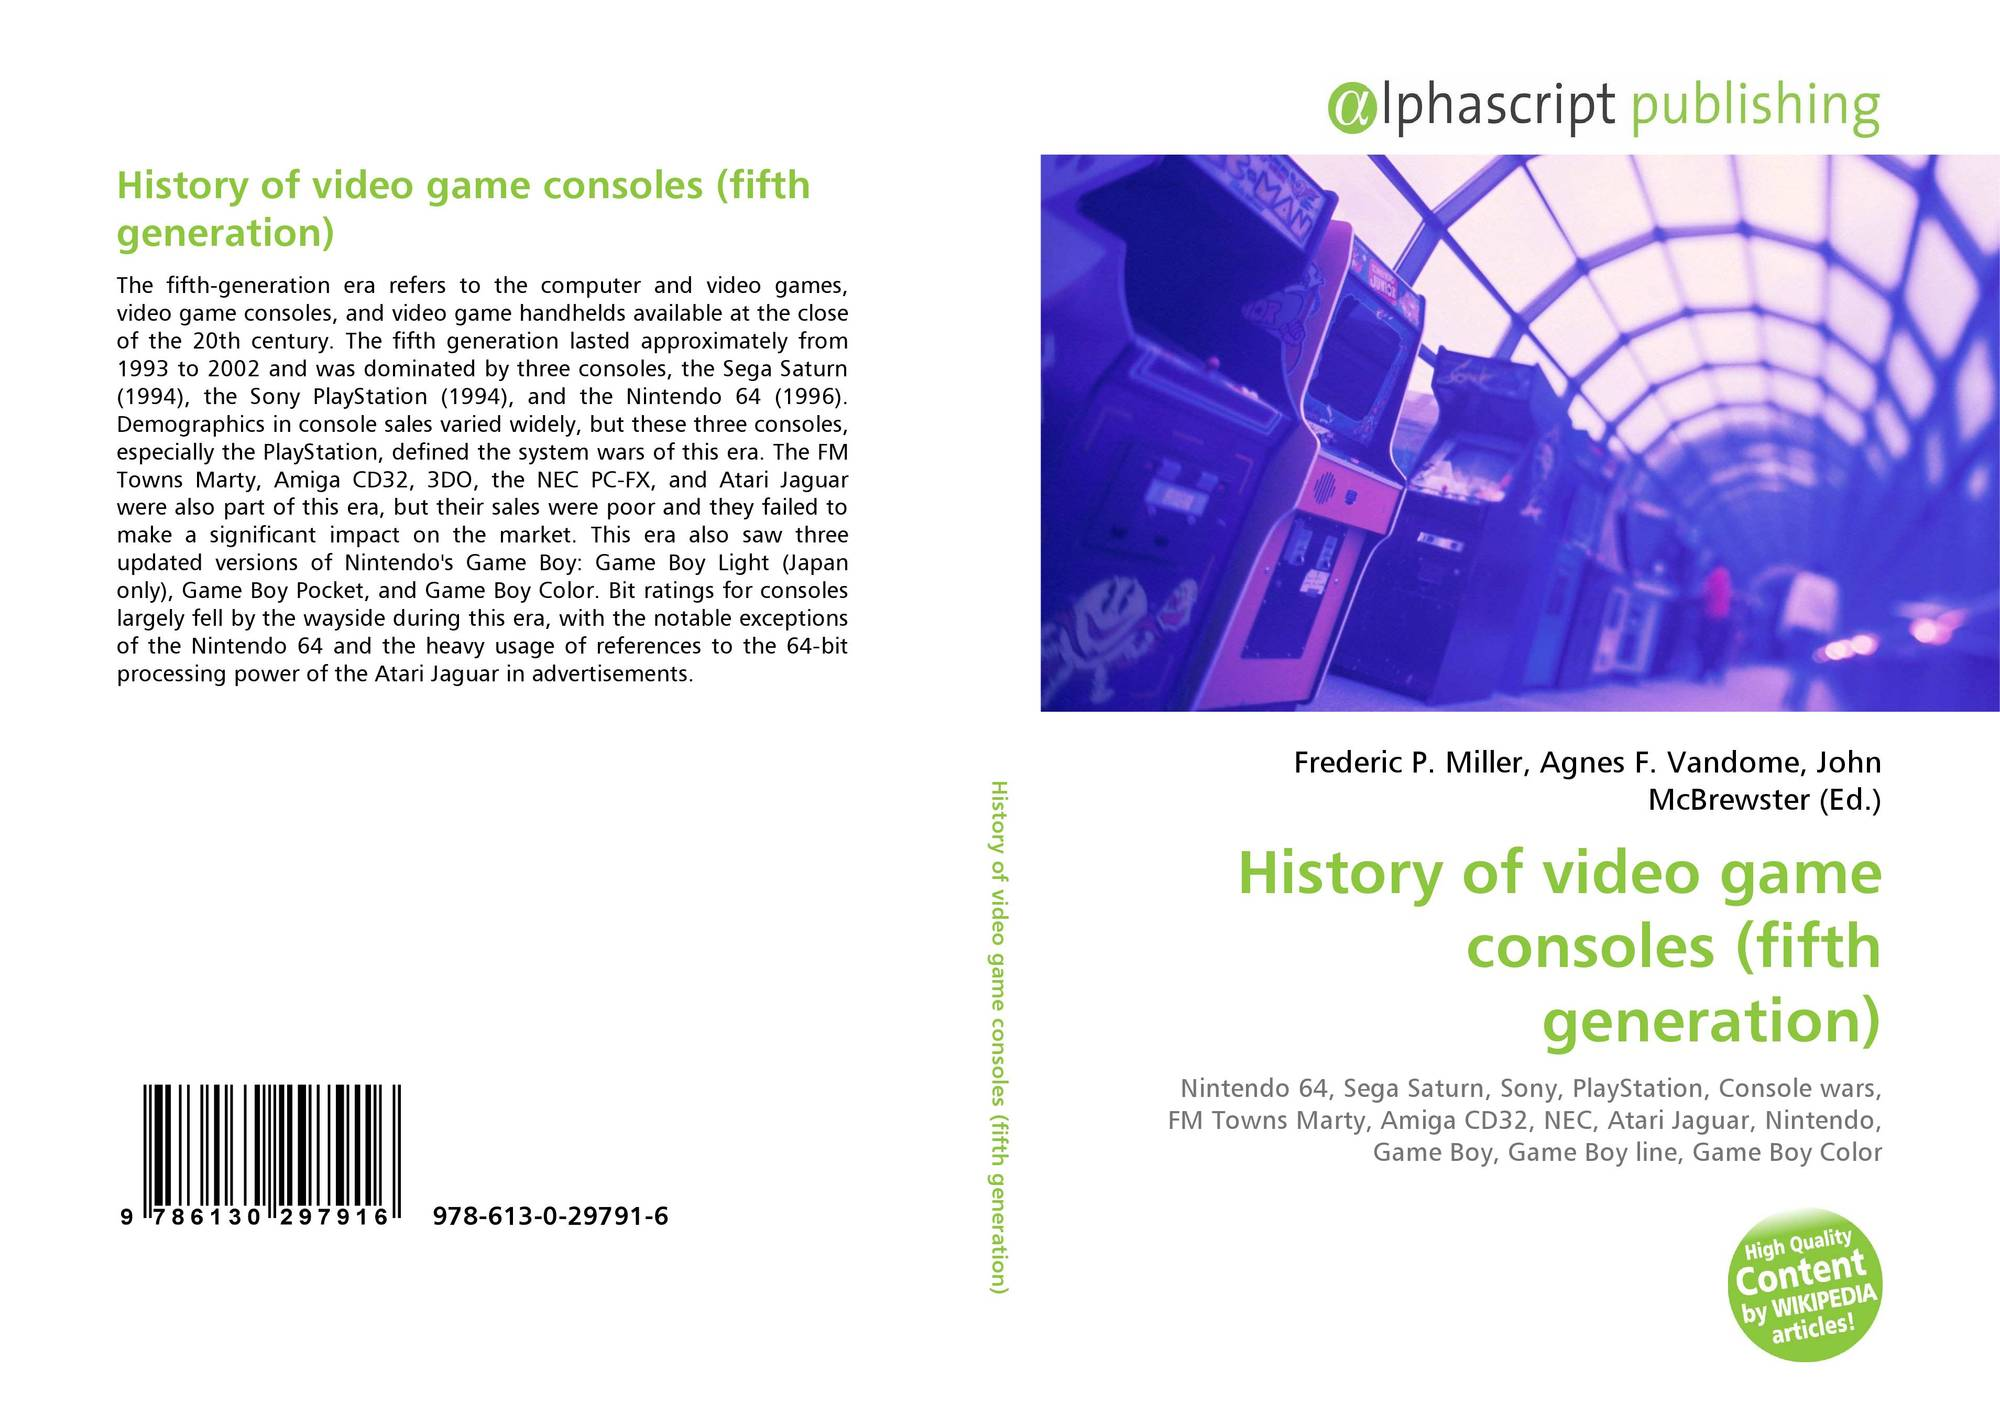 History of video game consoles (fifth generation), 978-613-0-29791-6